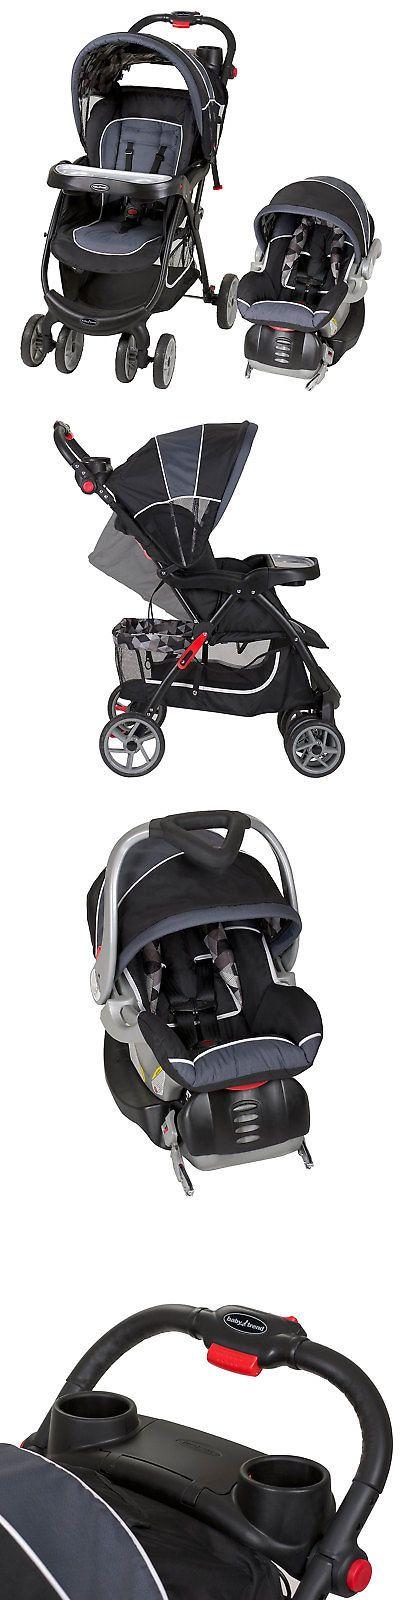 Other Stroller Accessories 180917: Babytrend Supernova Spin Infant Travel System Baby Stroller, Car Seat, And Base -> BUY IT NOW ONLY: $159.99 on eBay!